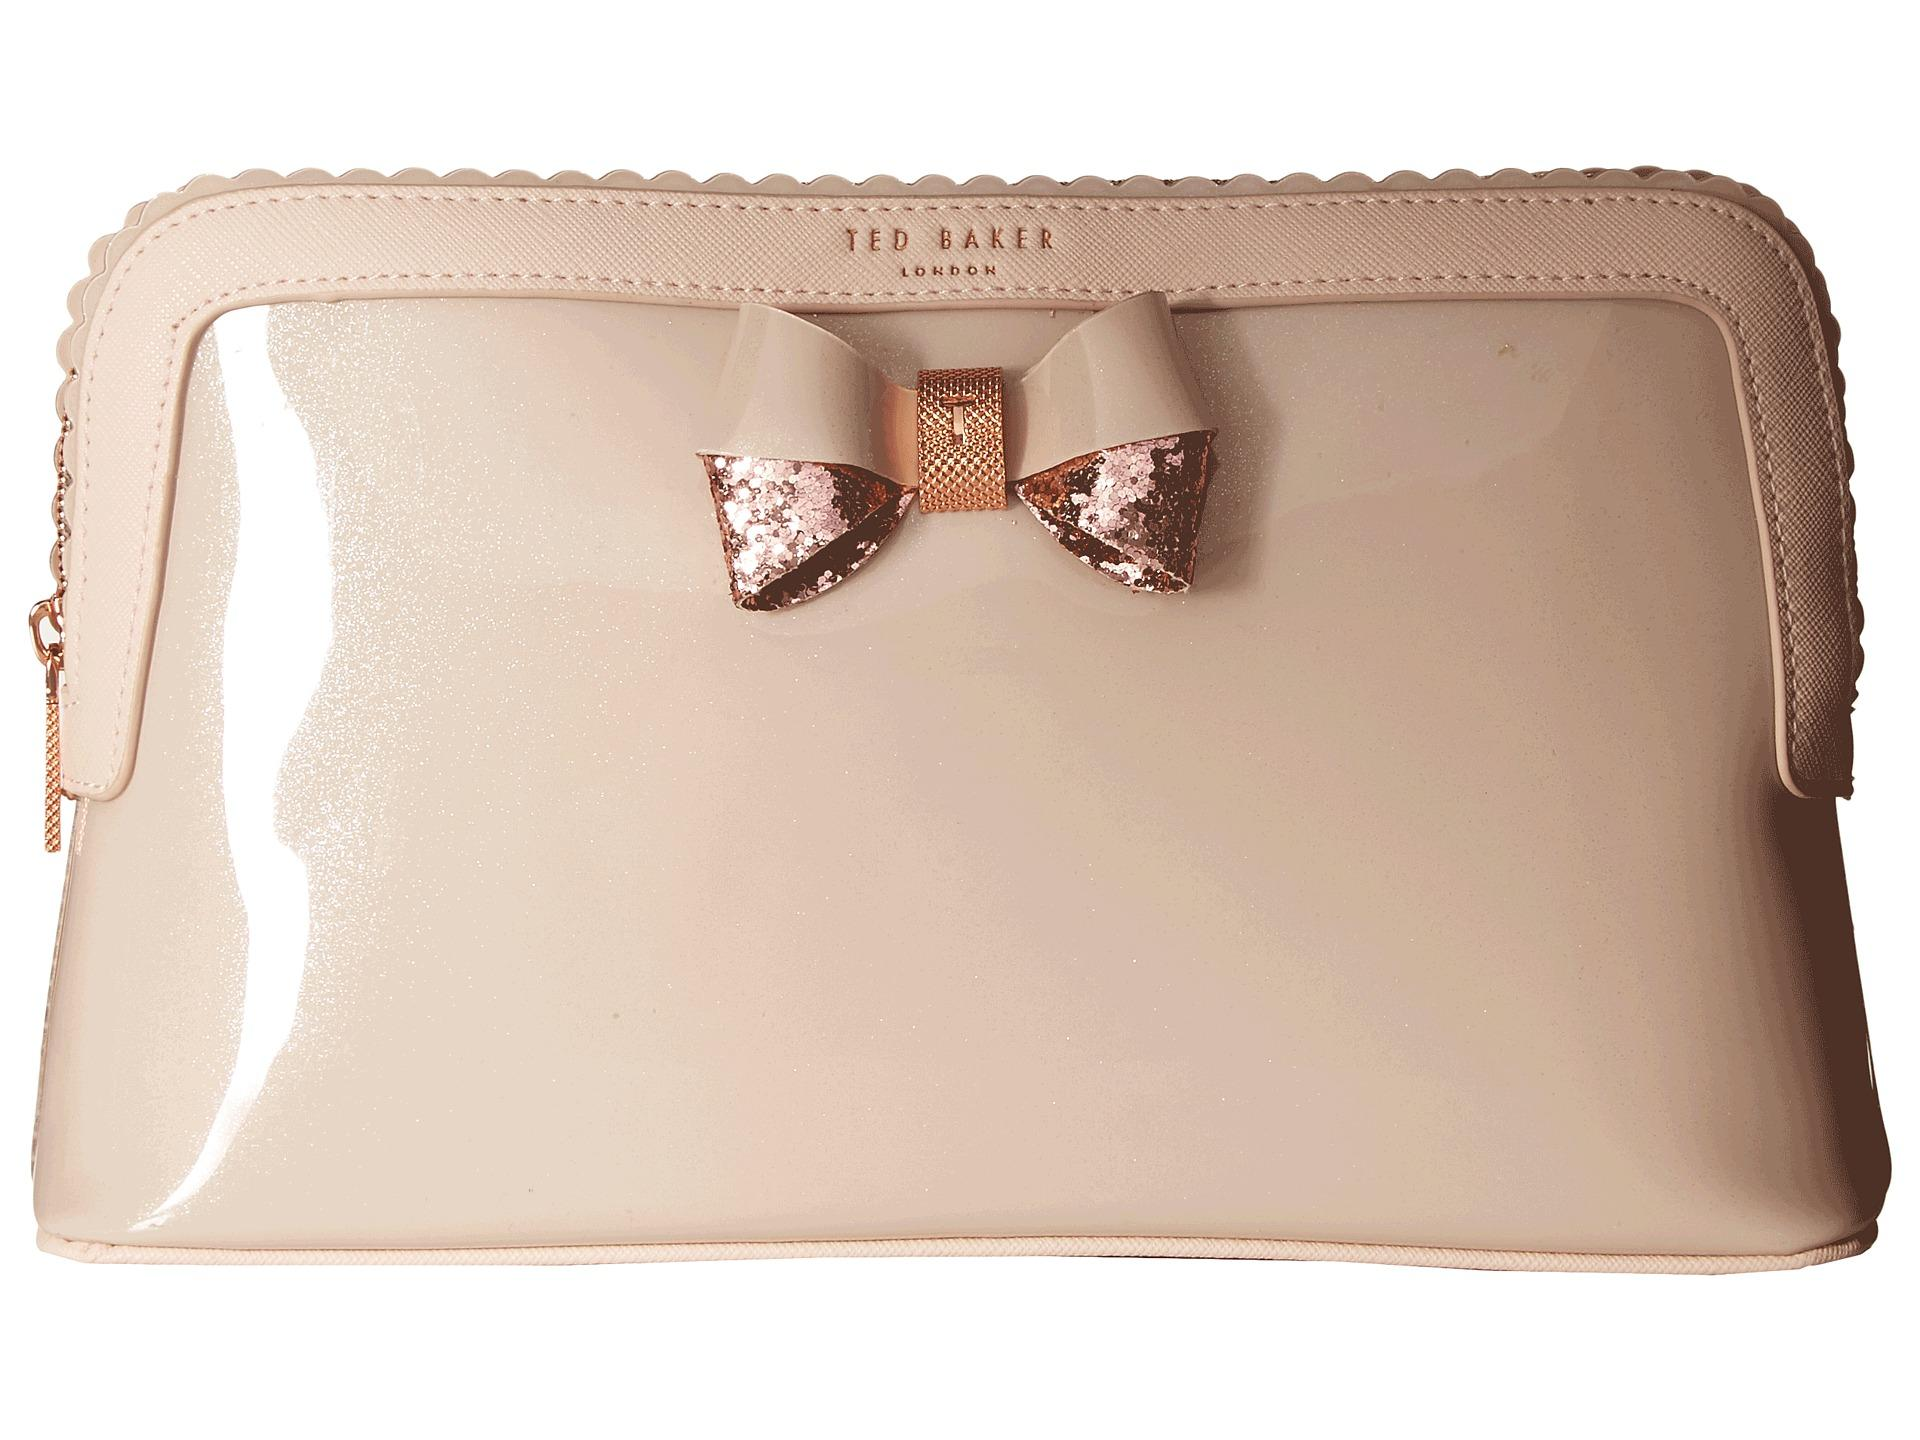 caa795ff0fa822 Lyst - Ted Baker Ardith in Gray